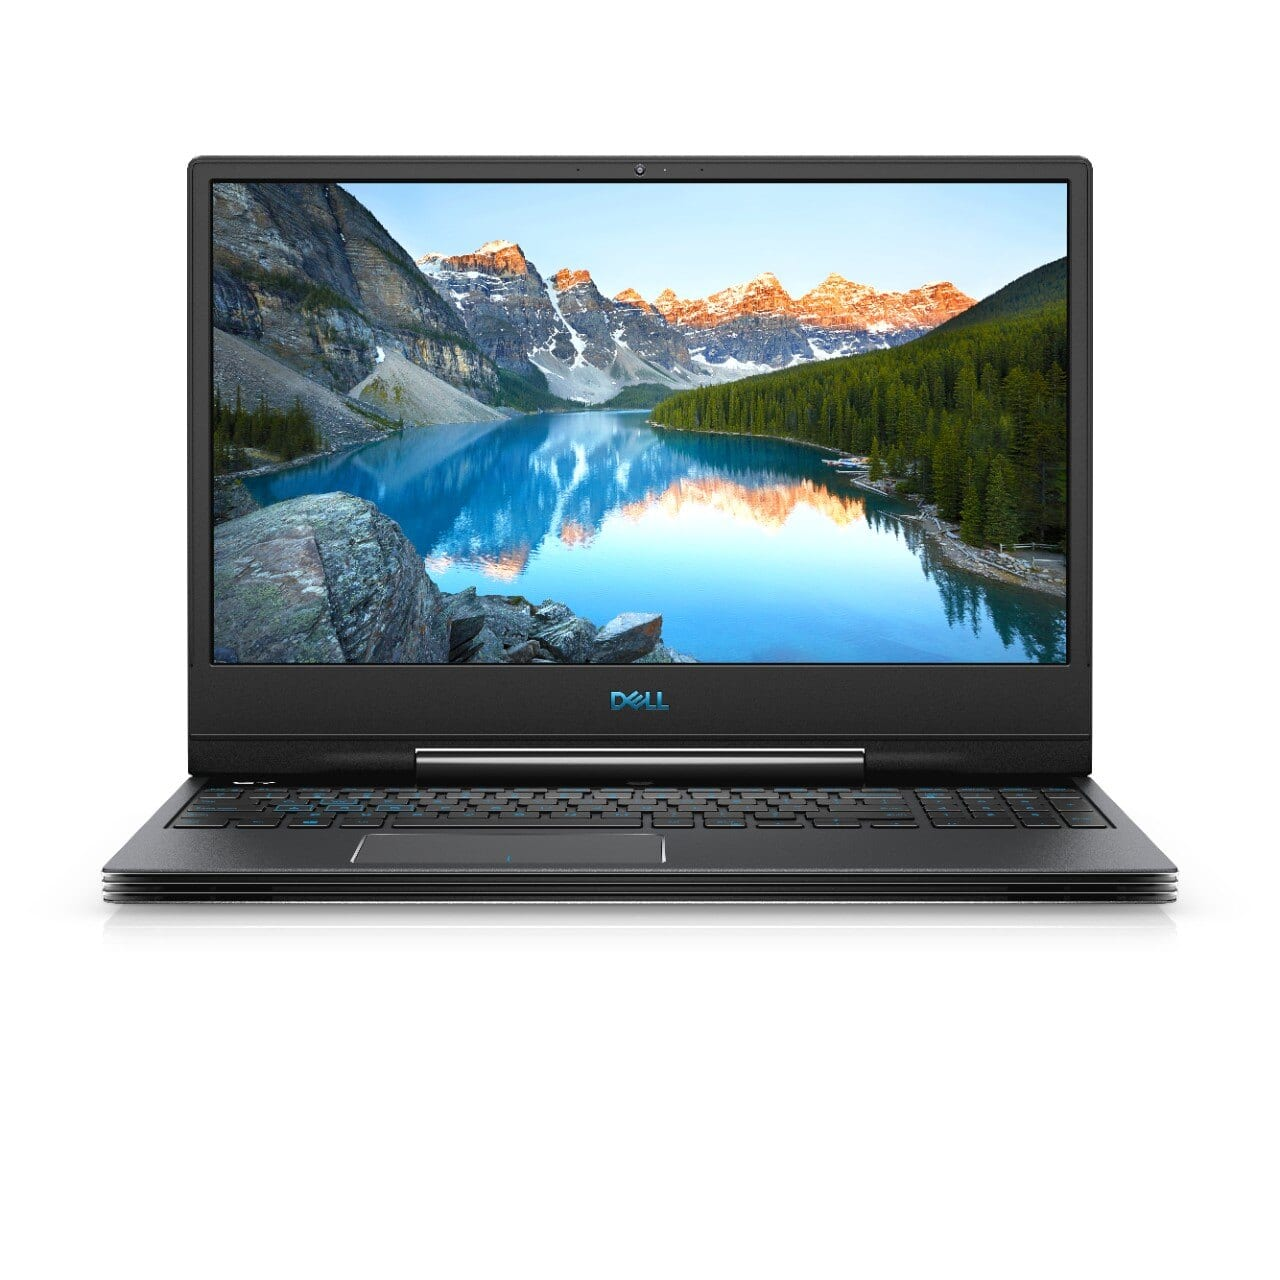 "Dell G7 7590 Laptop: Intel Core i7-9750H, 15.6"" 1080p IPS 144Hz, 16GB DDR4, 256GB SSD + 1TB HDD, RTX 2060, Win 10 + $232.20 Back In Points $1161.99 AC + Free Shipping @ Rakuten"